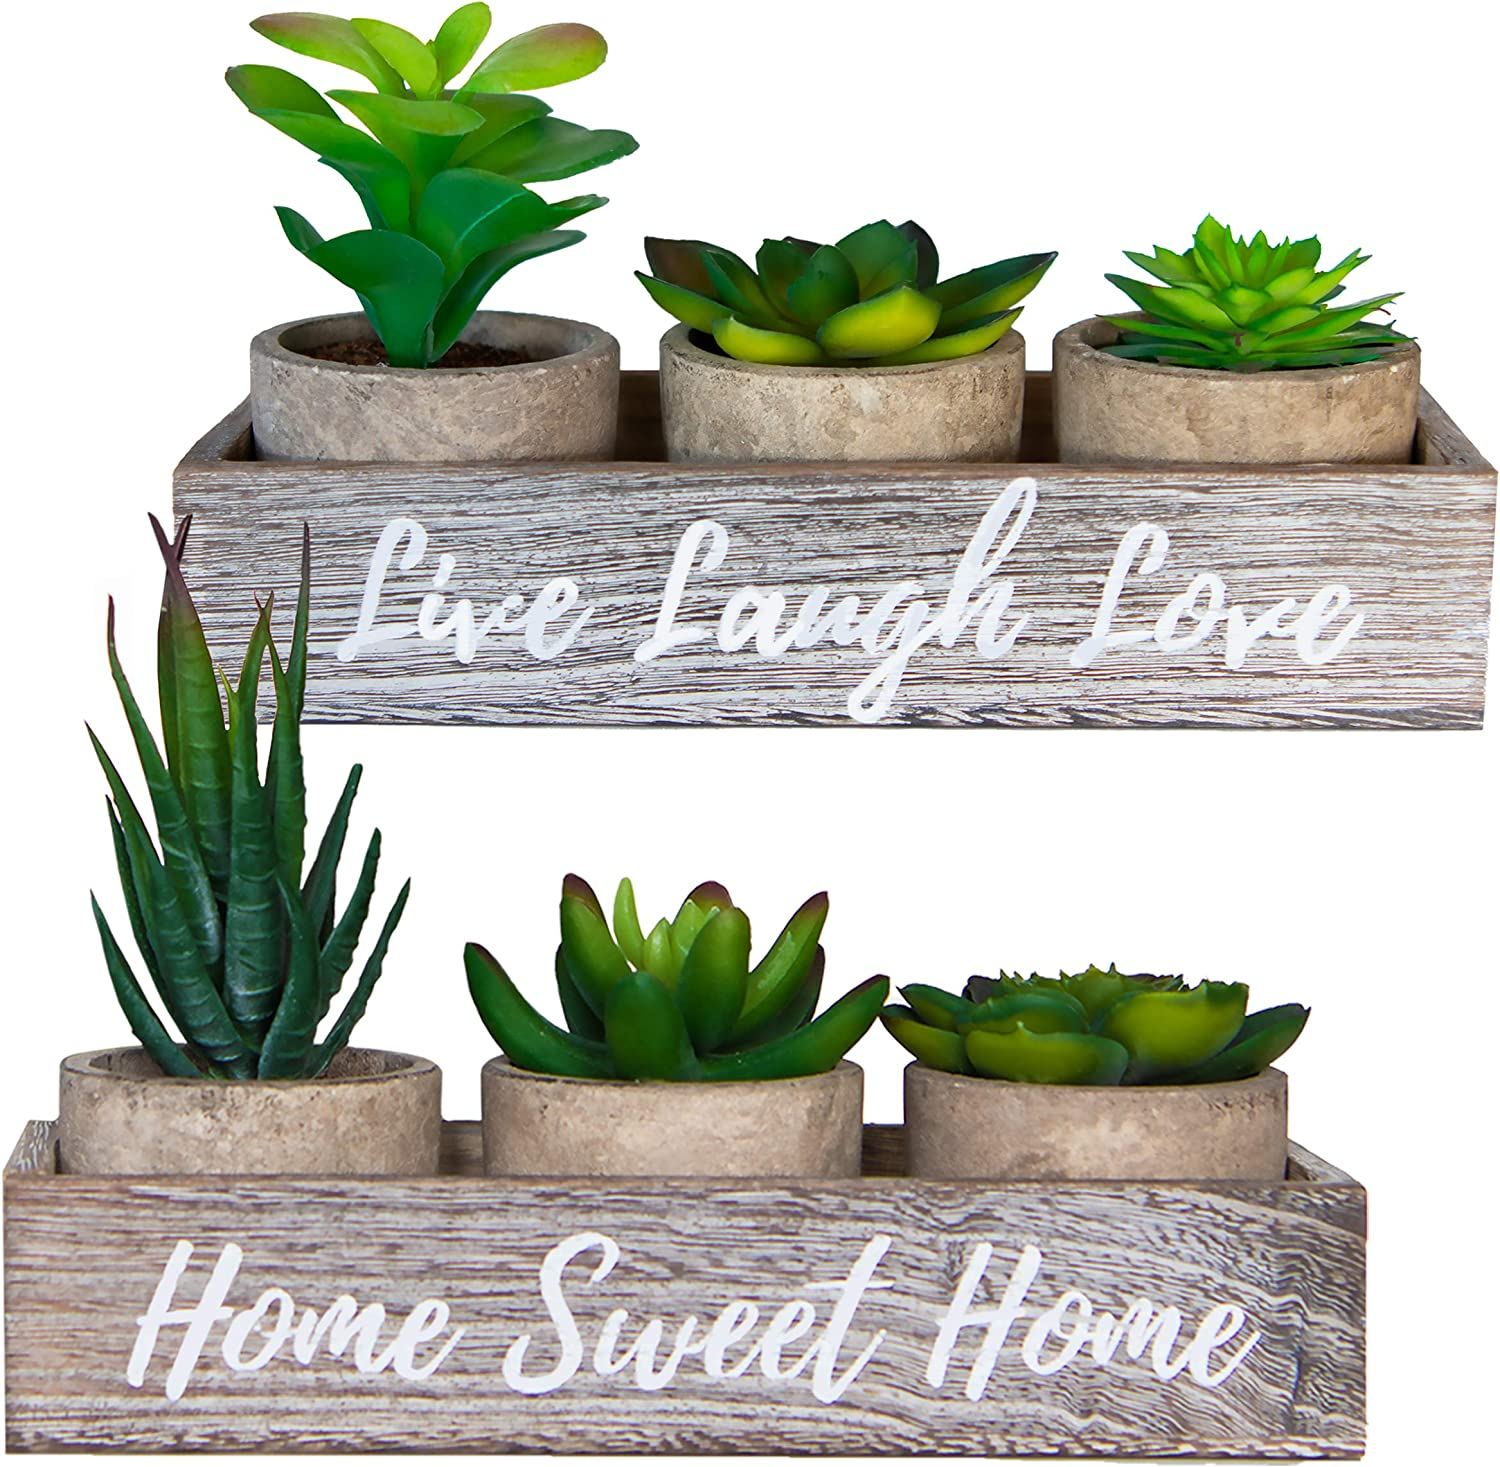 6 Artificial Succulent Plants In Pots And 2 Rustic Wooden Box Planters – Home Sweet Home & Live Laugh Love | Realistic Greenery Mini Faux Plant Arrangements For Home Decor Office Table Bathroom Dorm